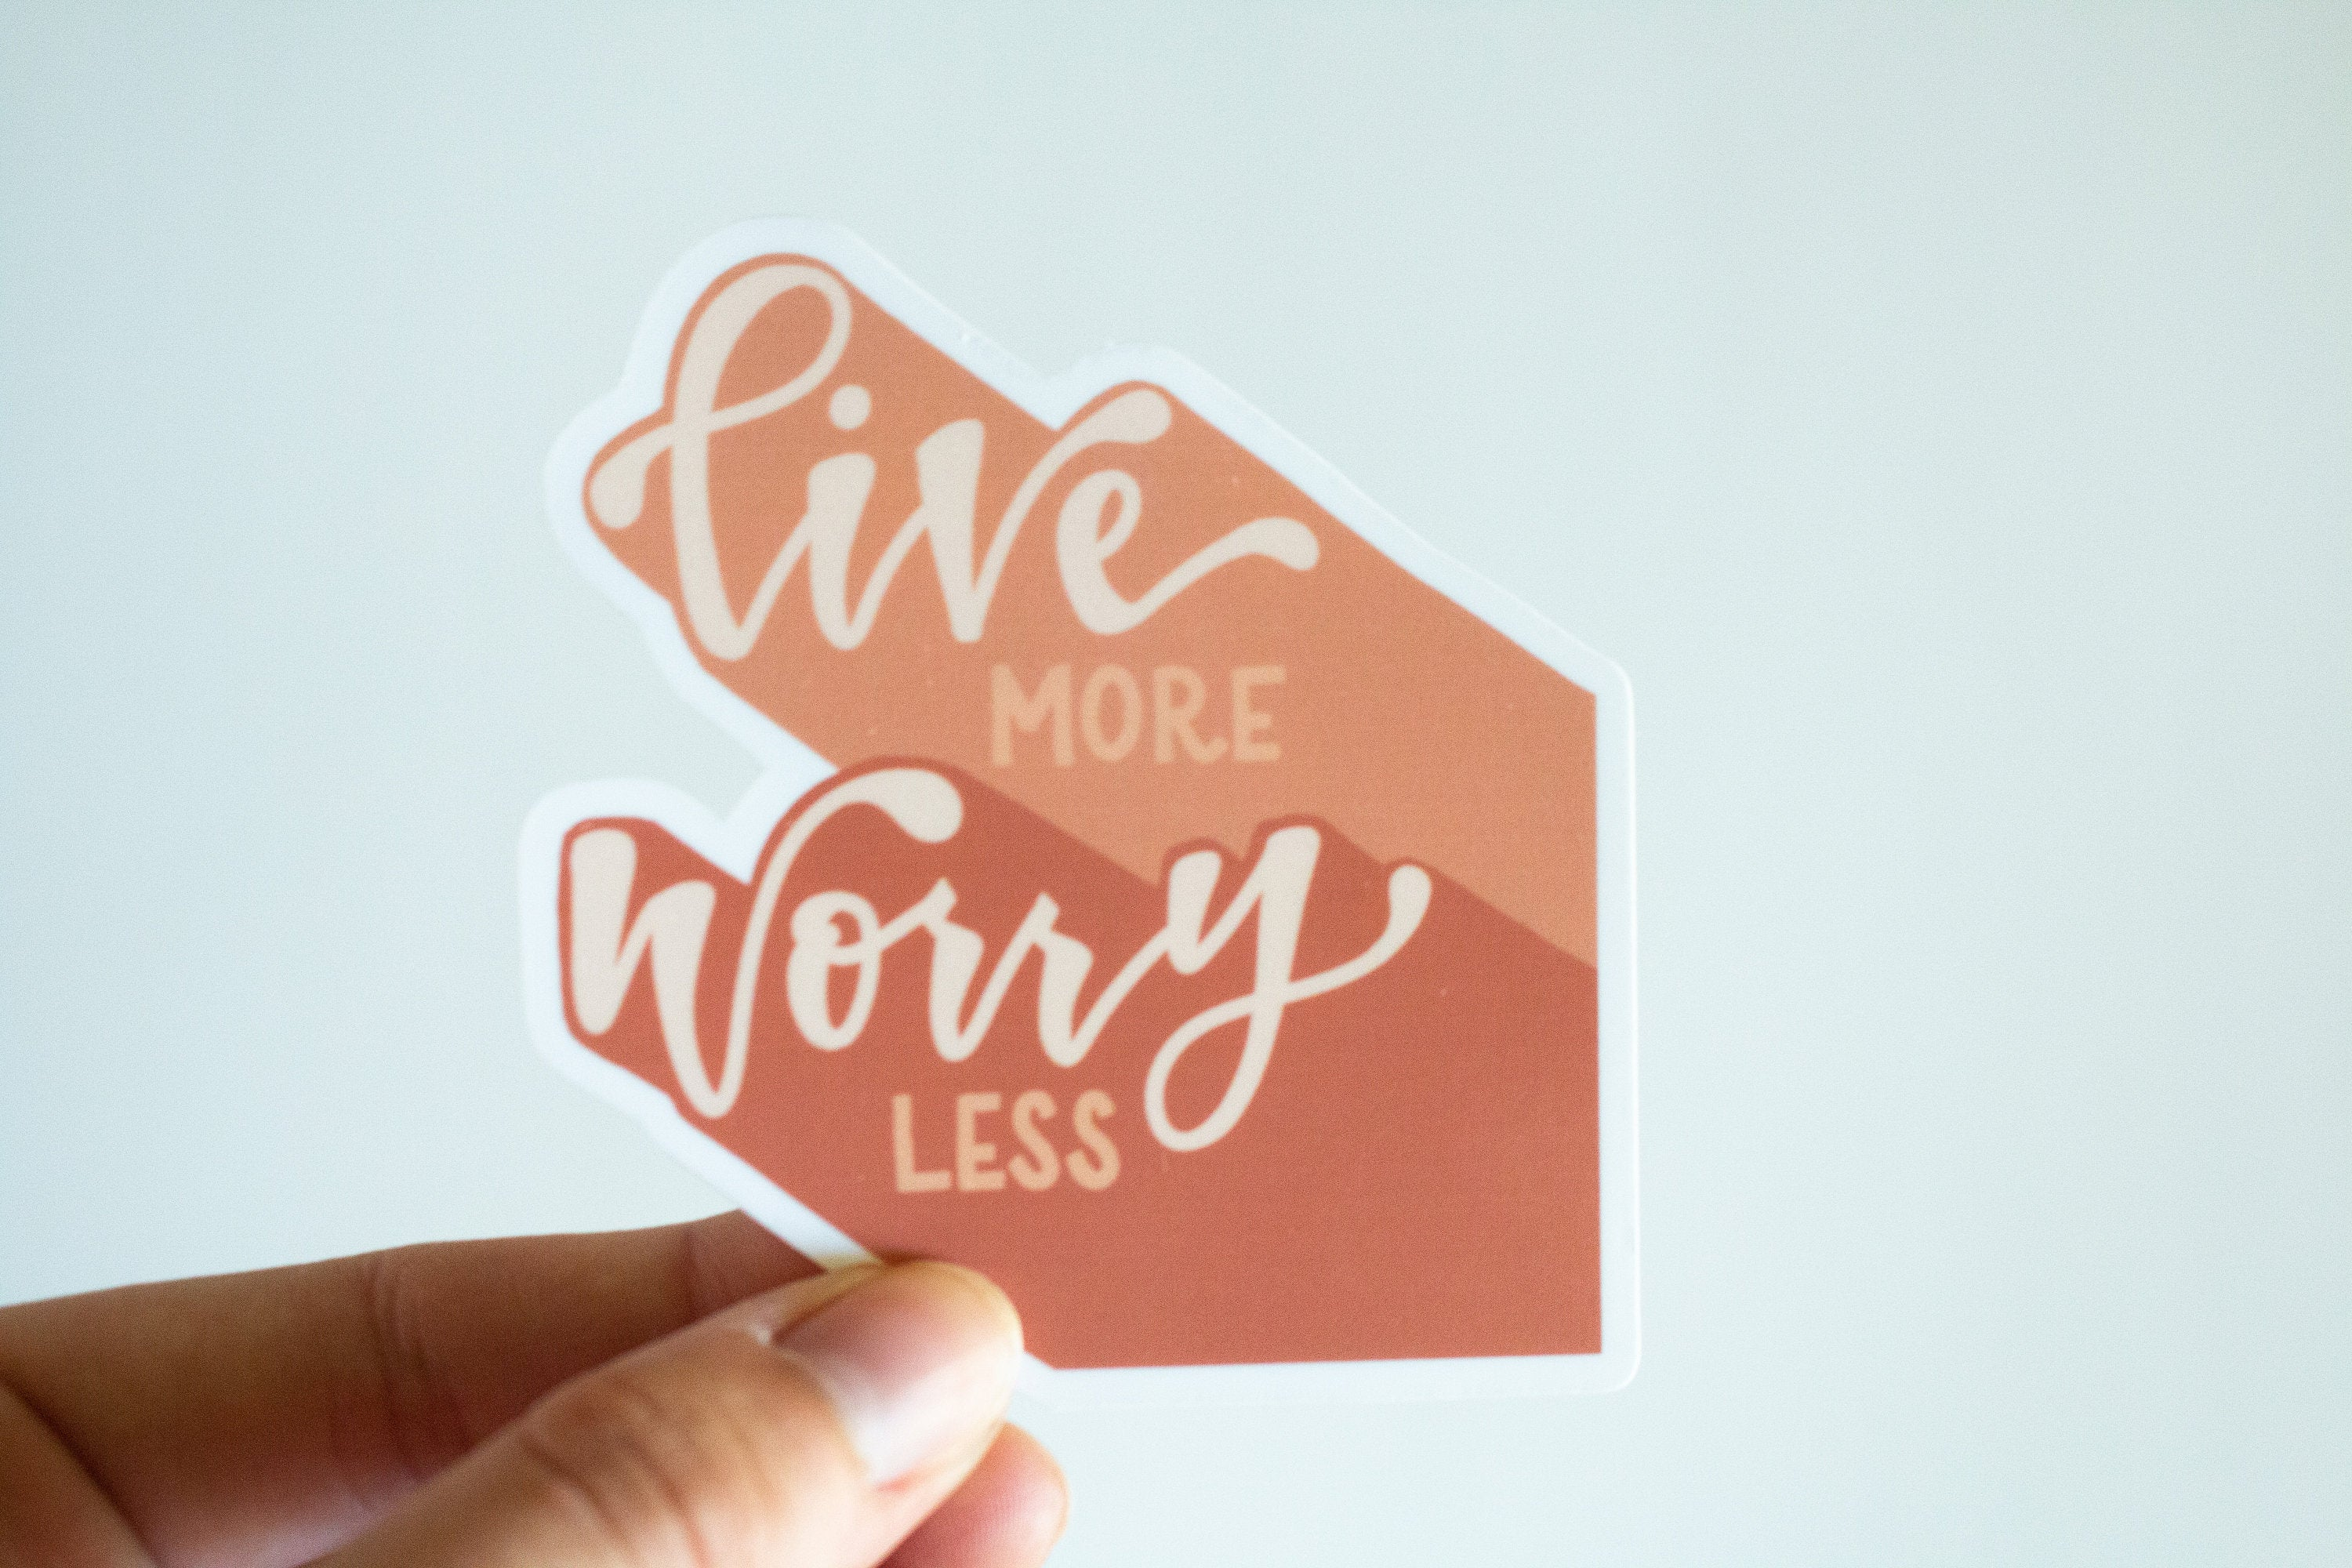 Live More, Worry Less - Sticker